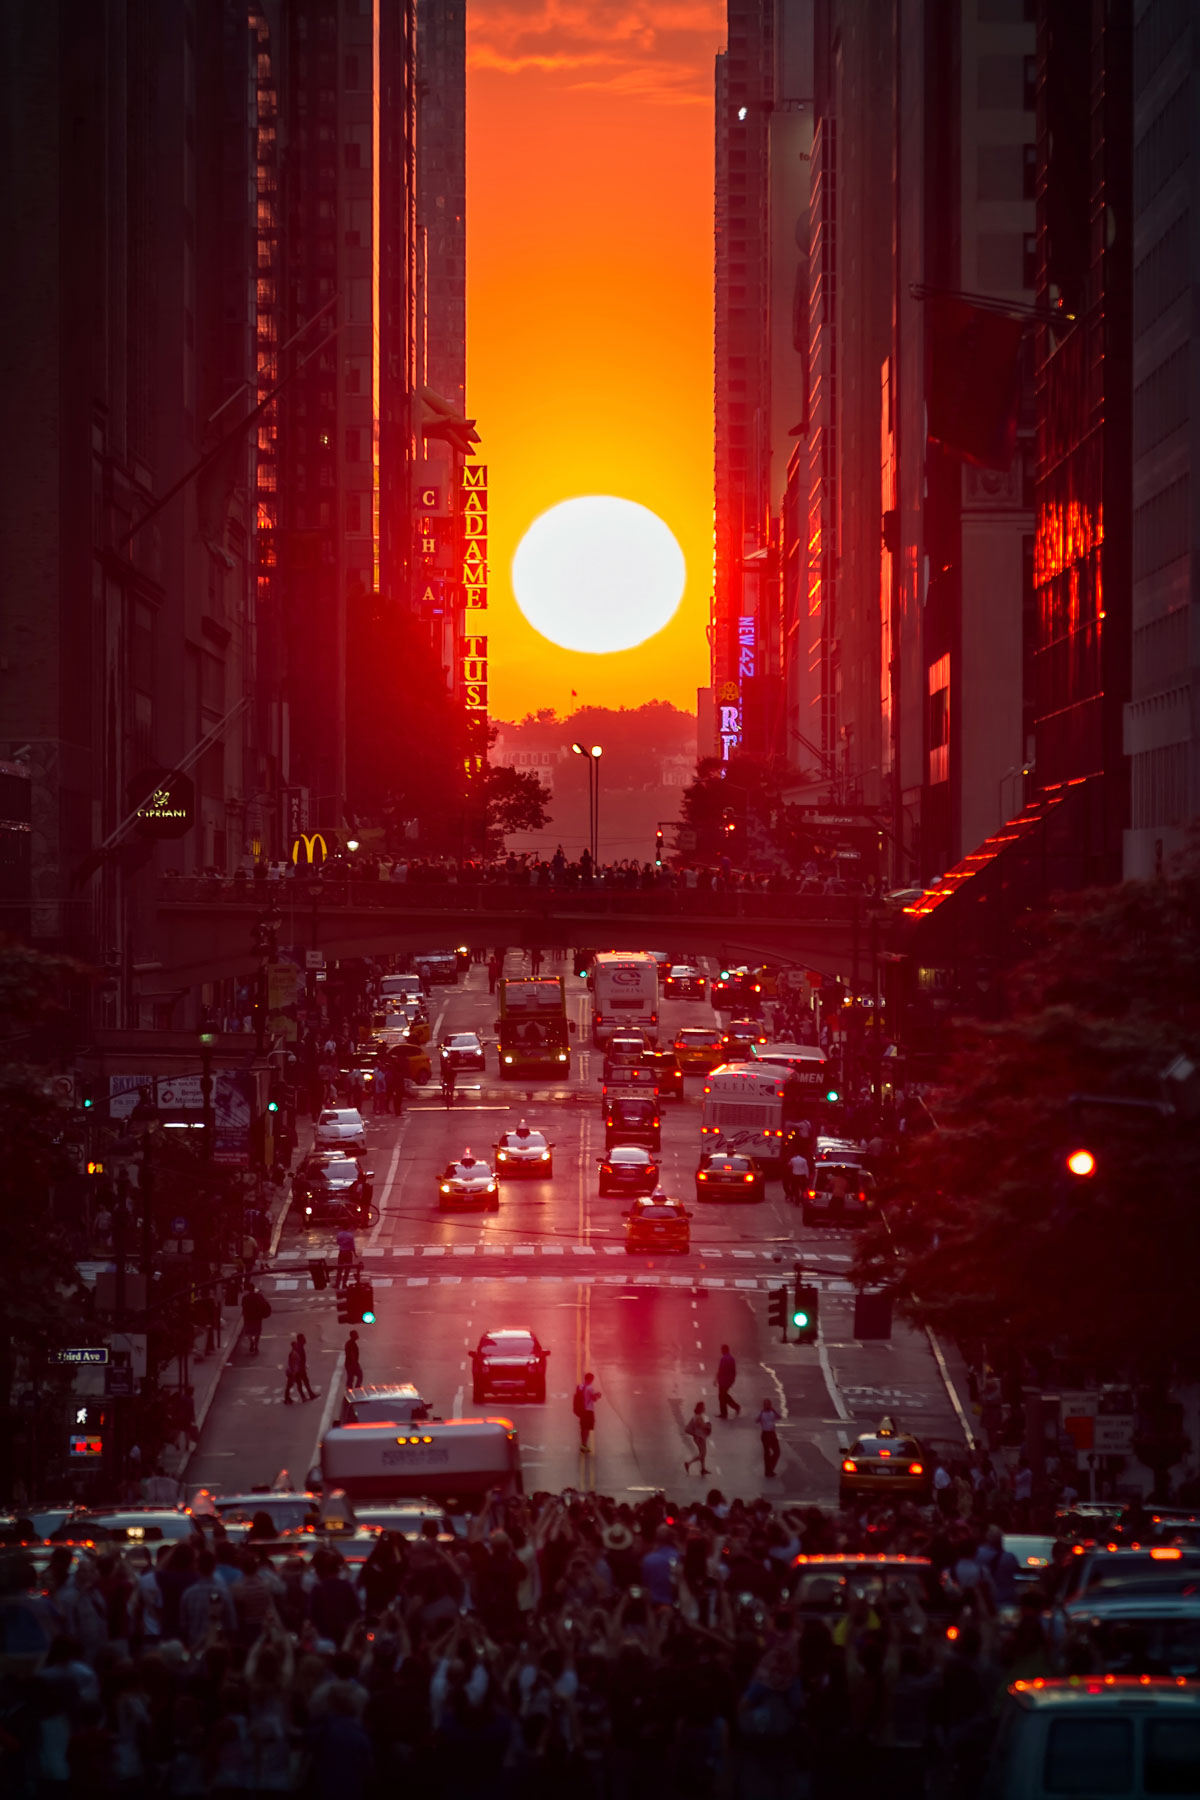 Travel Wish List, a New York City Sunset